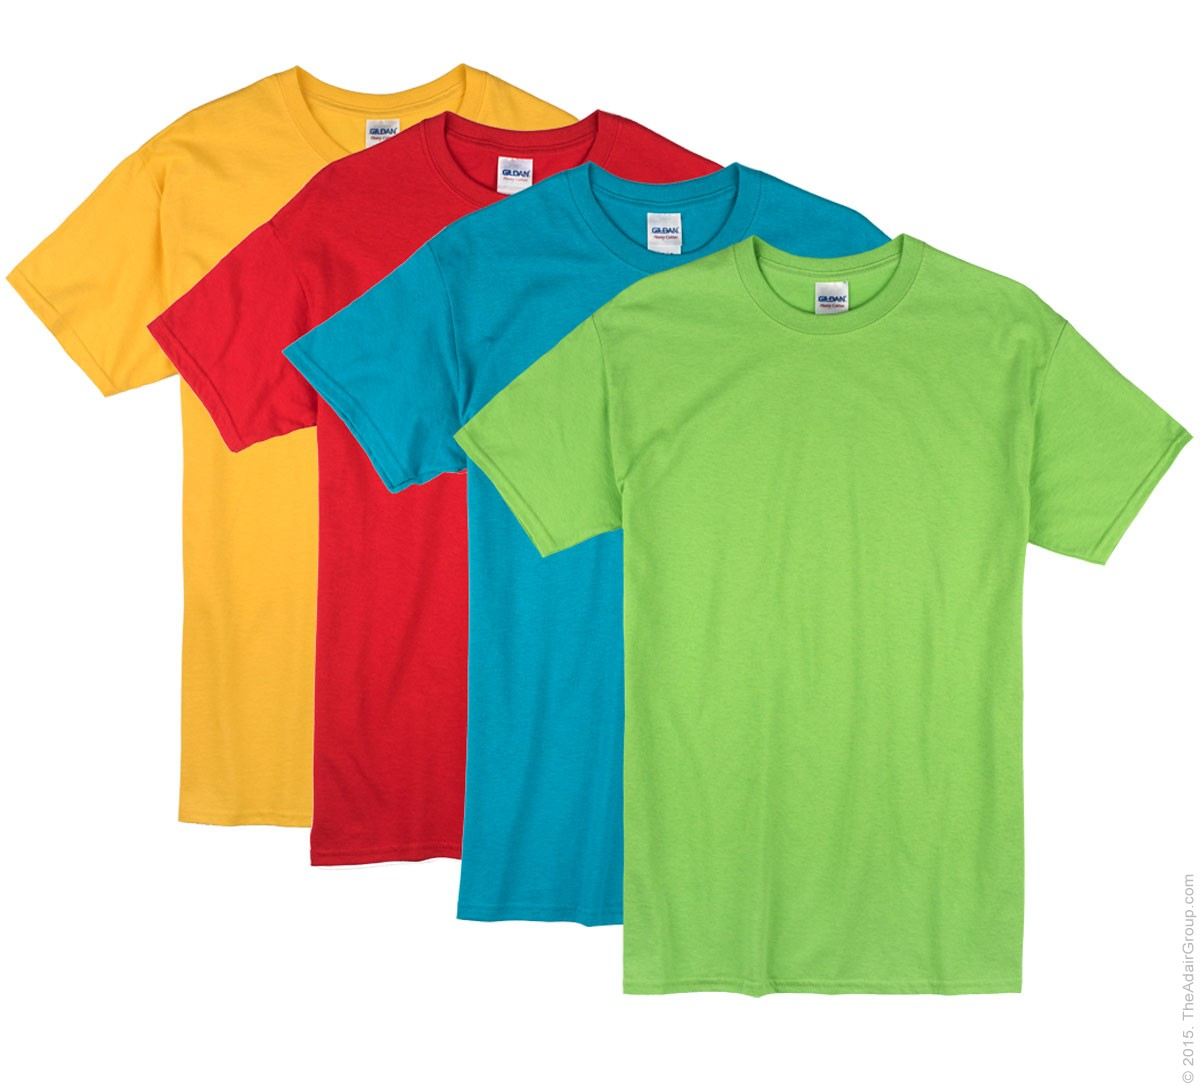 Cheap colored t shirts artee shirt for One color t shirt